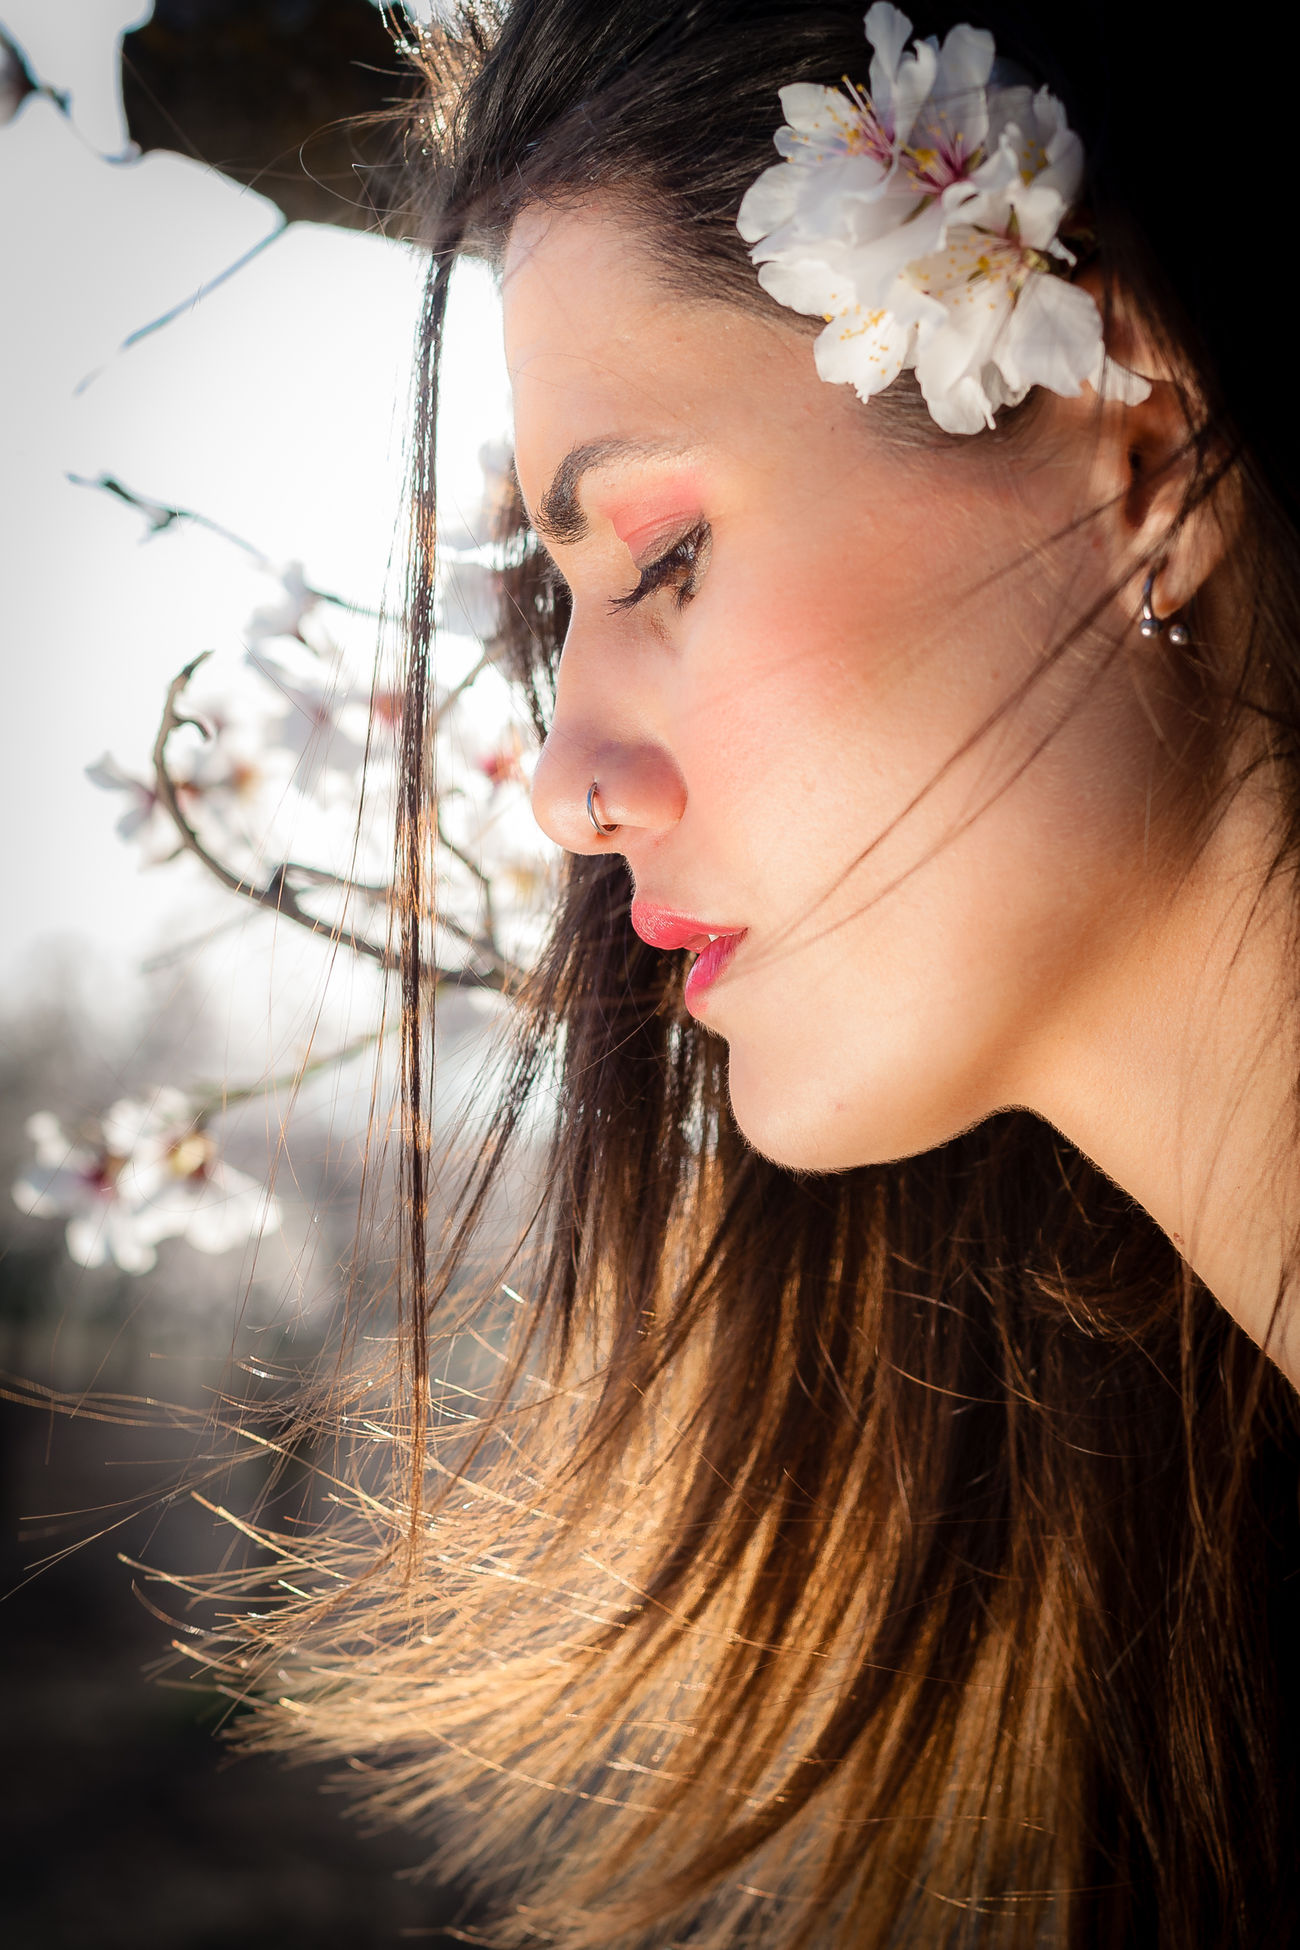 Model: Lola MUA: Noe Backlight Beauty Beauty In Nature Bokeh Brown Hair Close-up Contemplation Day Fashion Flower Focus On Foreground Headshot Long Hair One Young Woman Only Outdoors Person Serious Young Adult Young Women